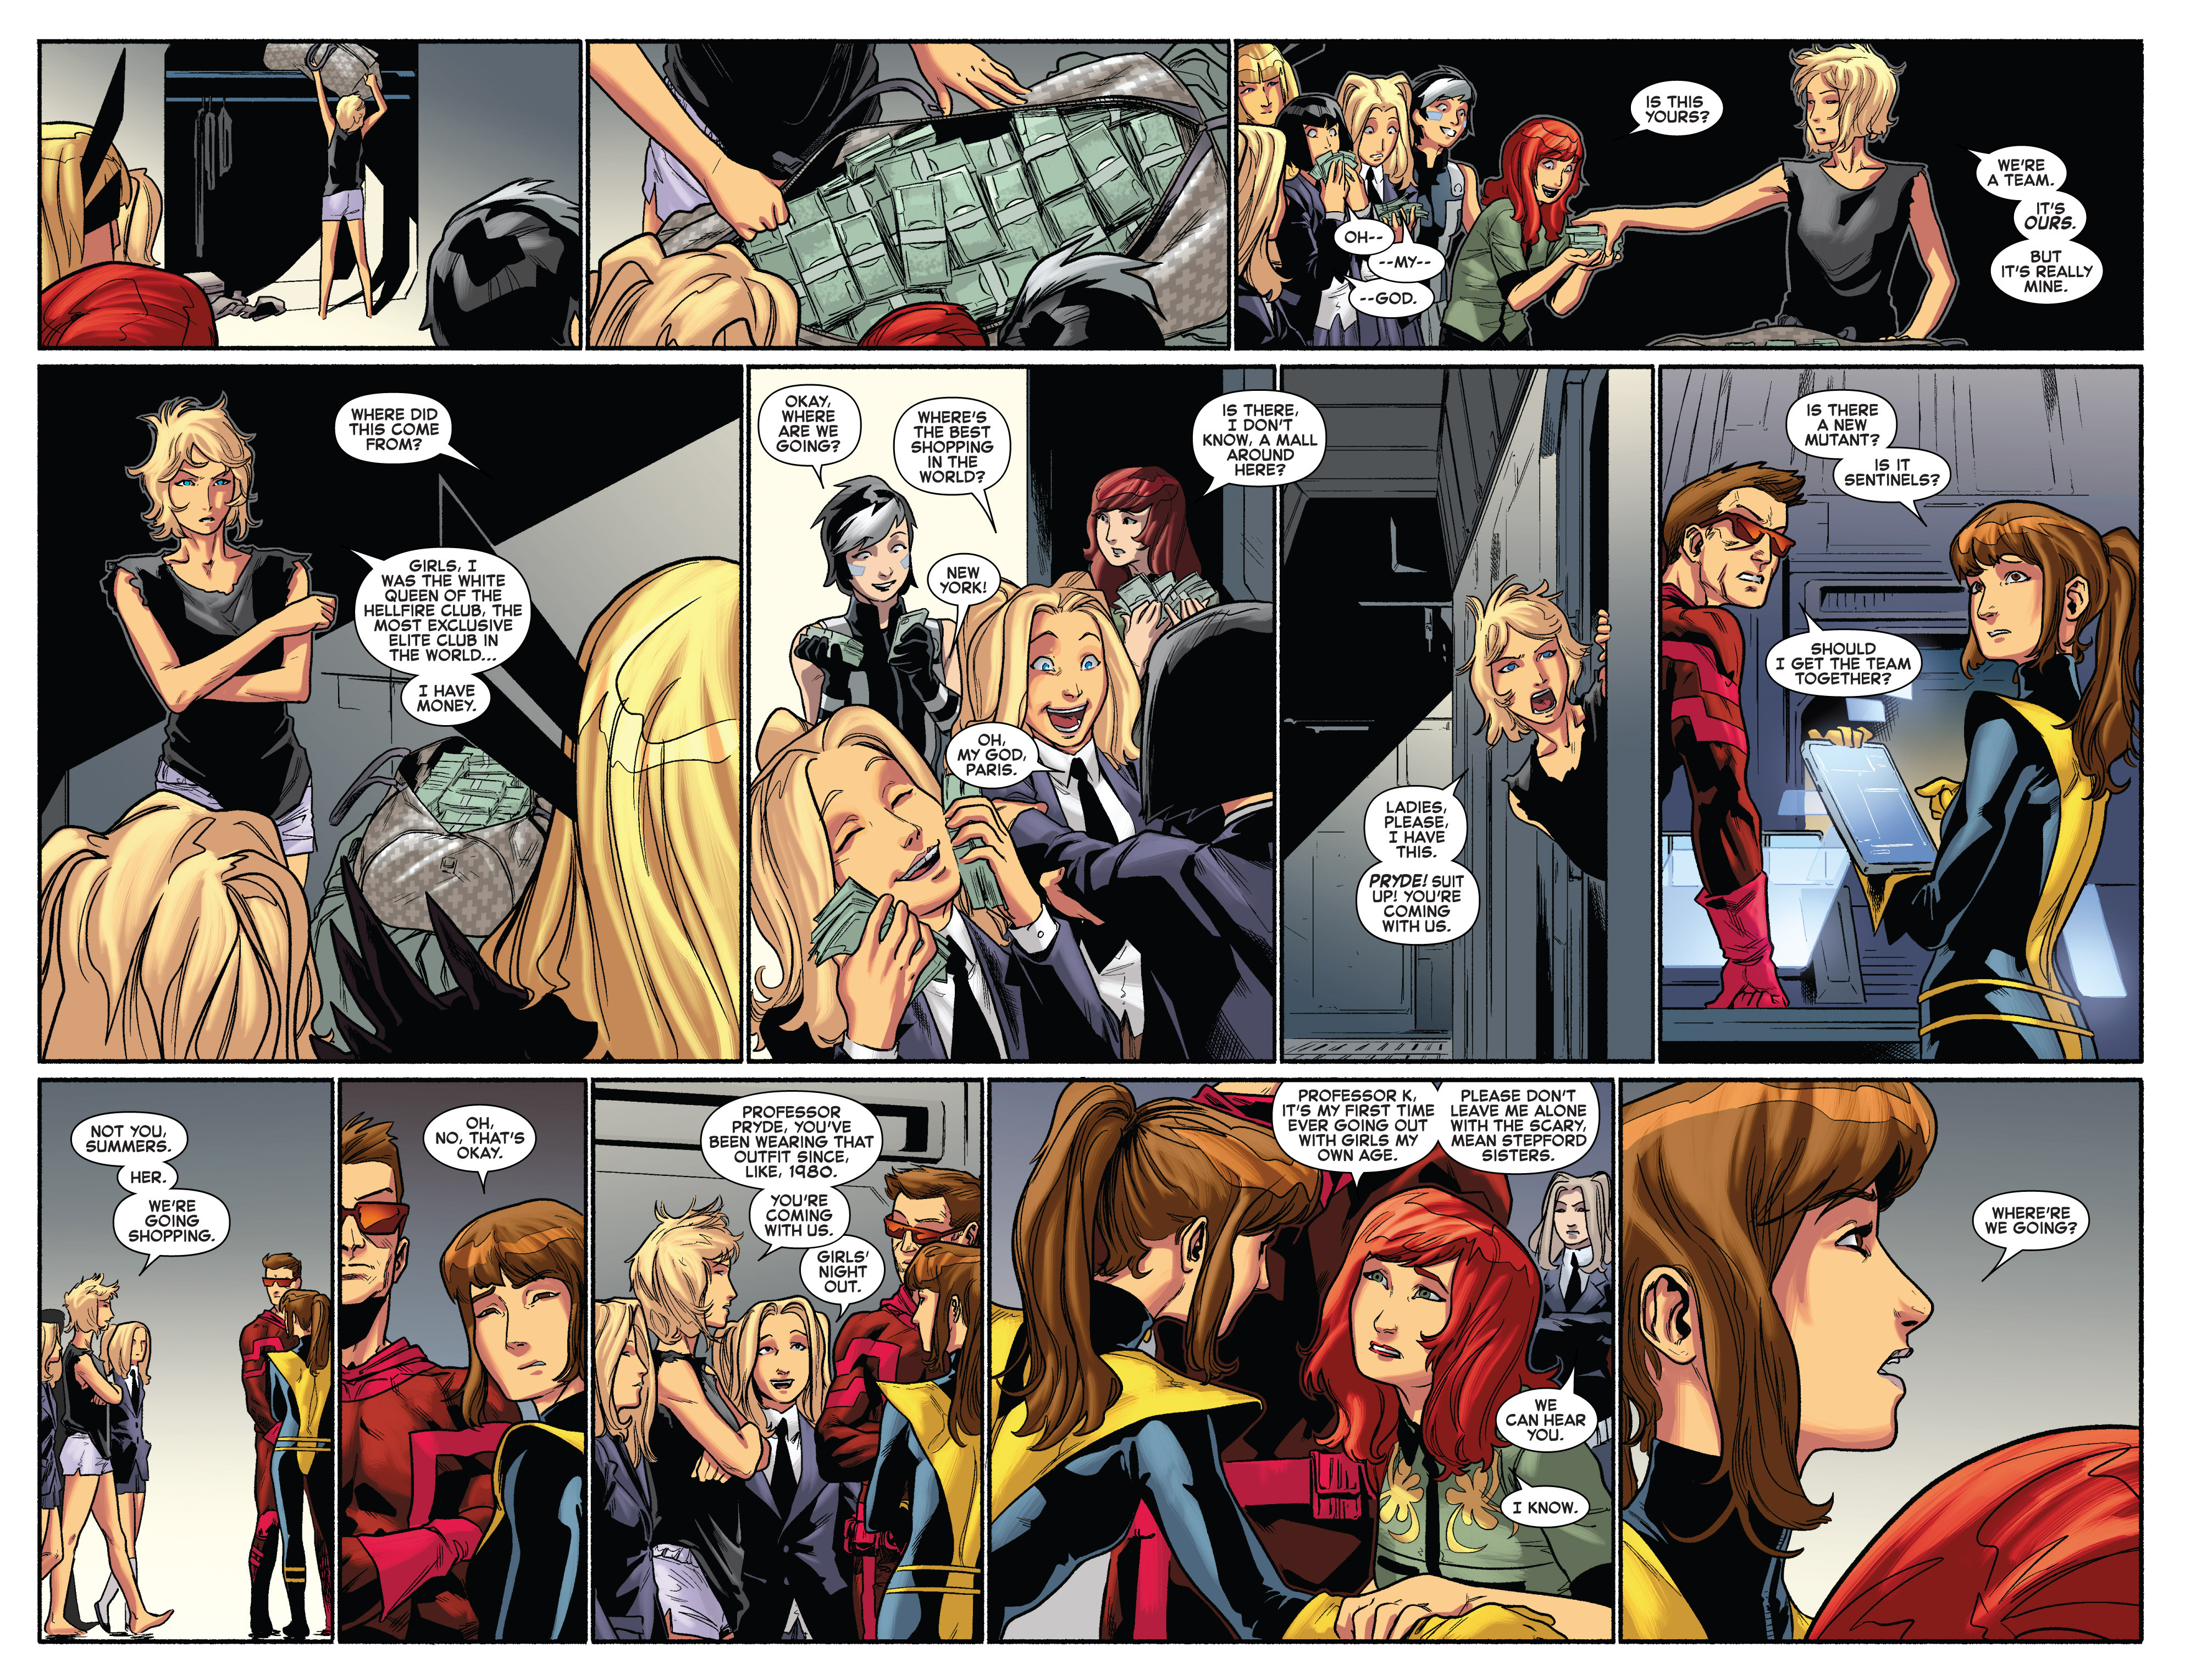 Read online Uncanny X-Men (2013) comic -  Issue # _TPB 3 - The Good, The Bad, The Inhuman - 32